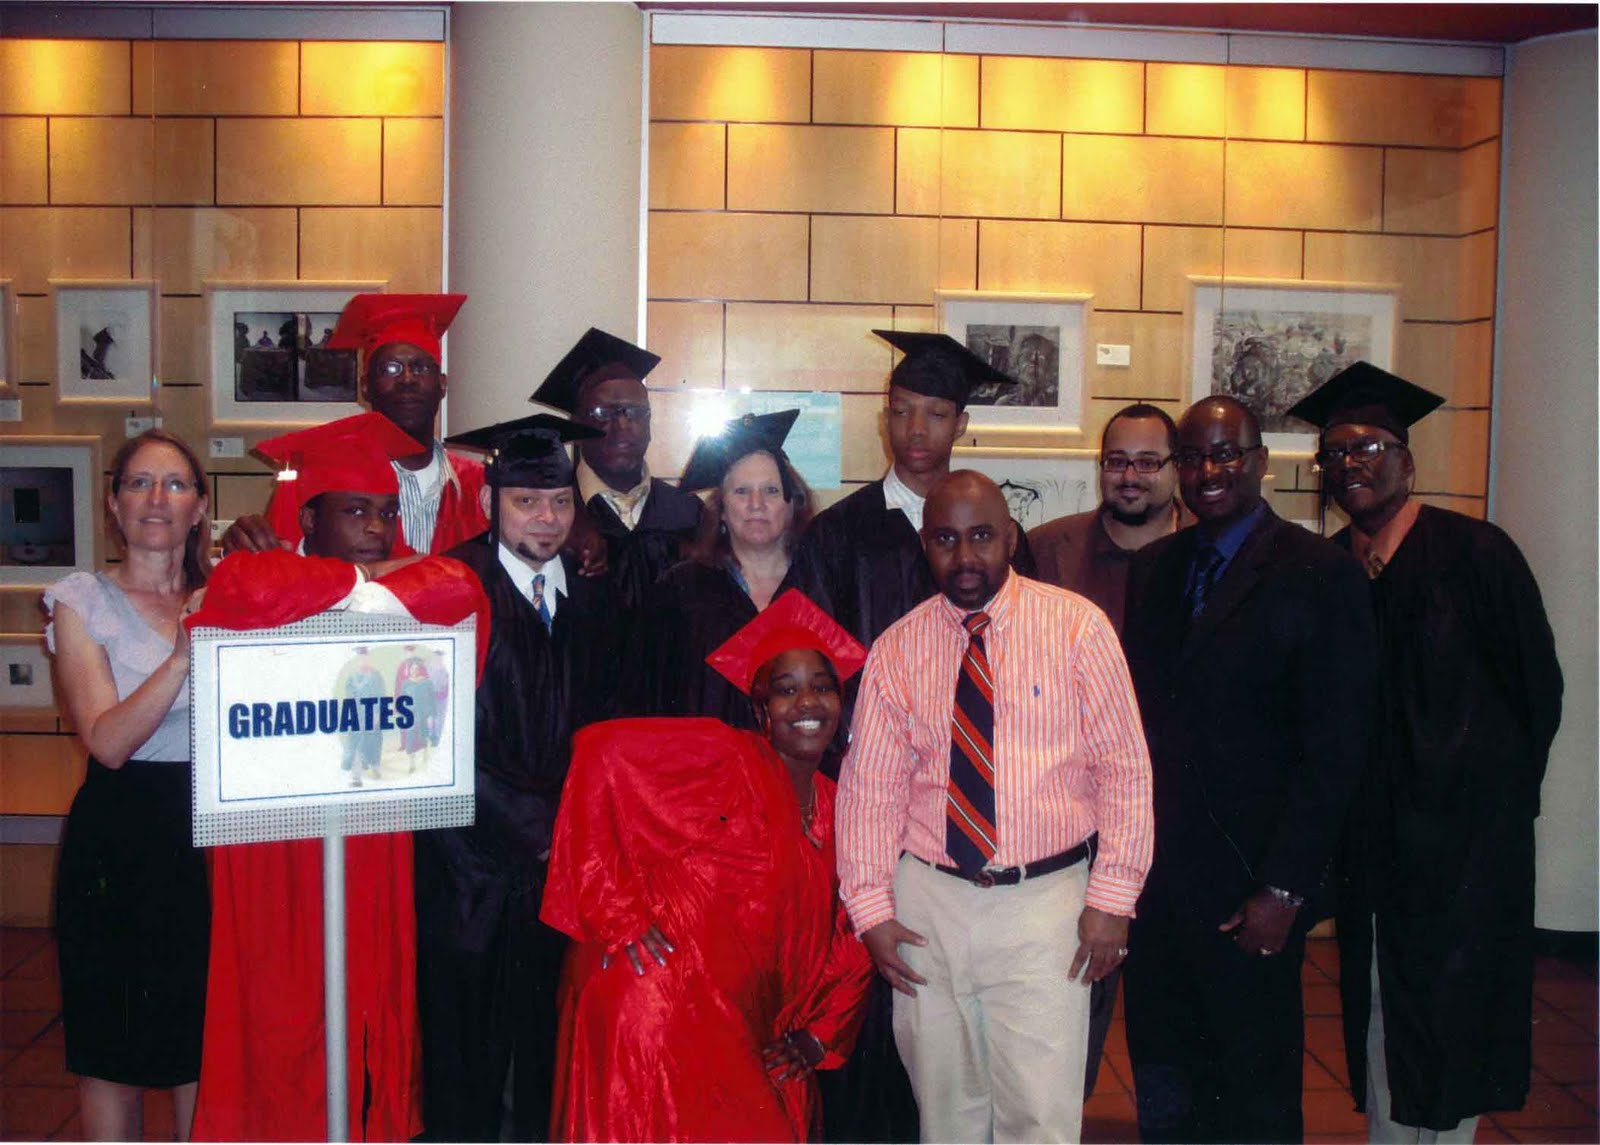 thirteen honors odyssey house residents at ged graduation odyssey